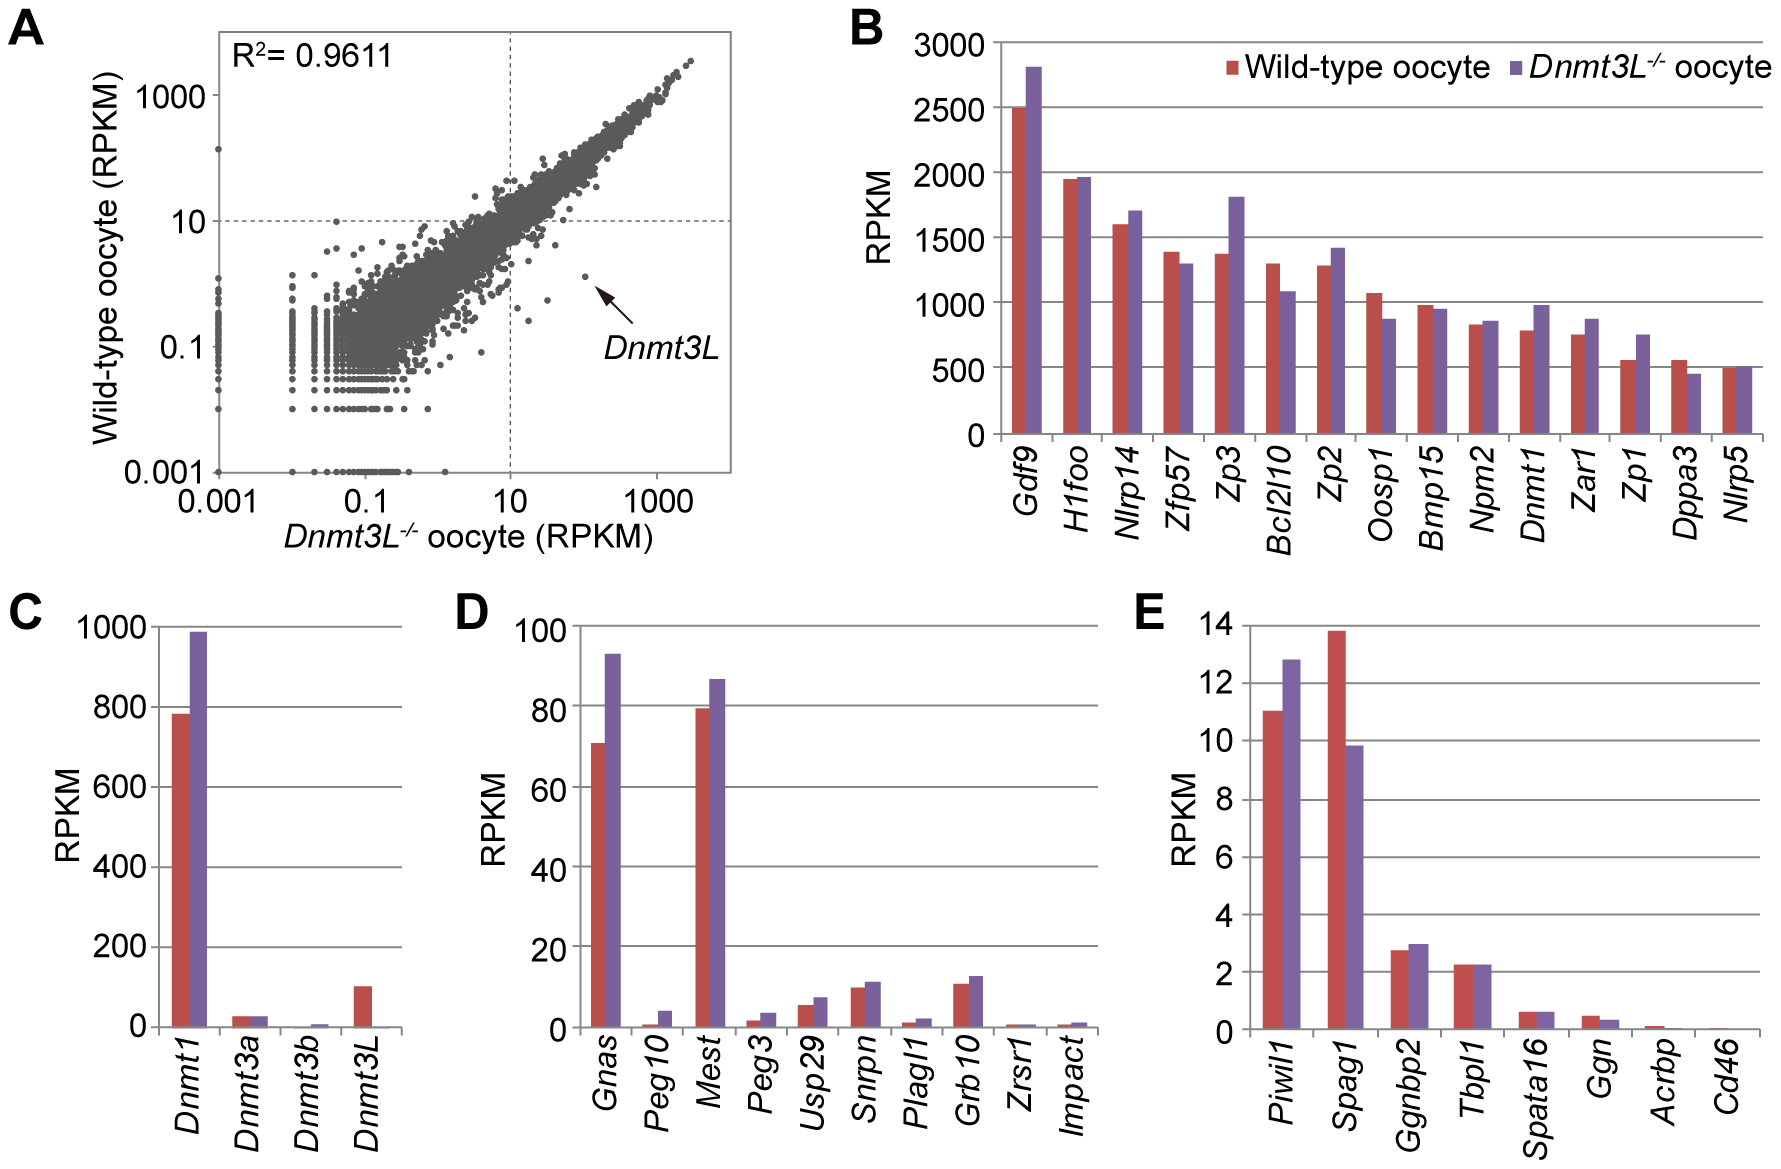 Comparison of gene expression profiles between wild-type and <i>Dnmt3L<sup>−/−</sup></i> oocytes.